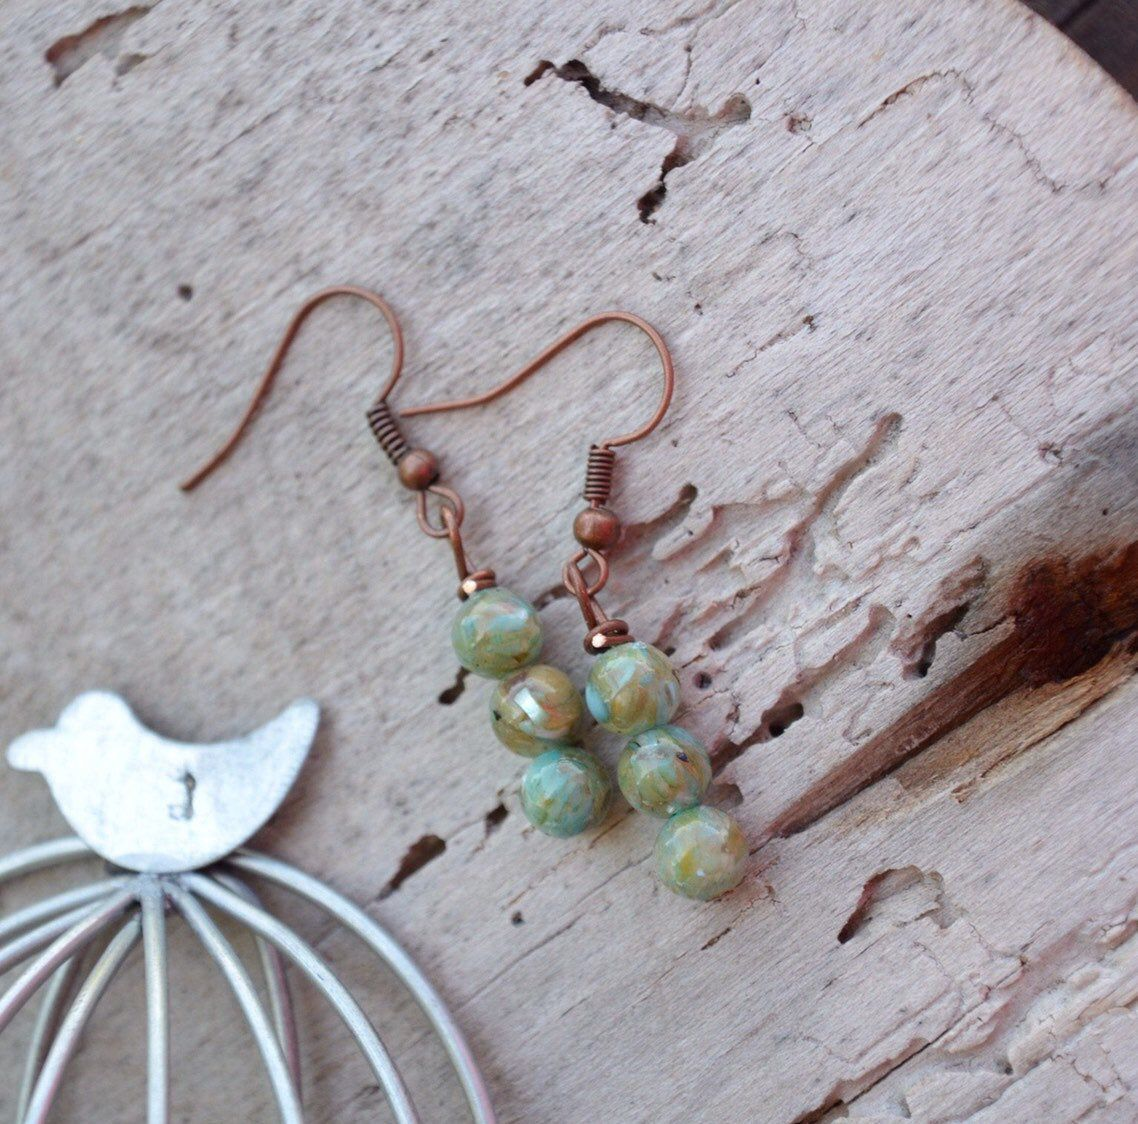 Turquoise bead earrings, beach jewelry Excited to share this item from my shop: Turquoise bead earrings, beach jewelry